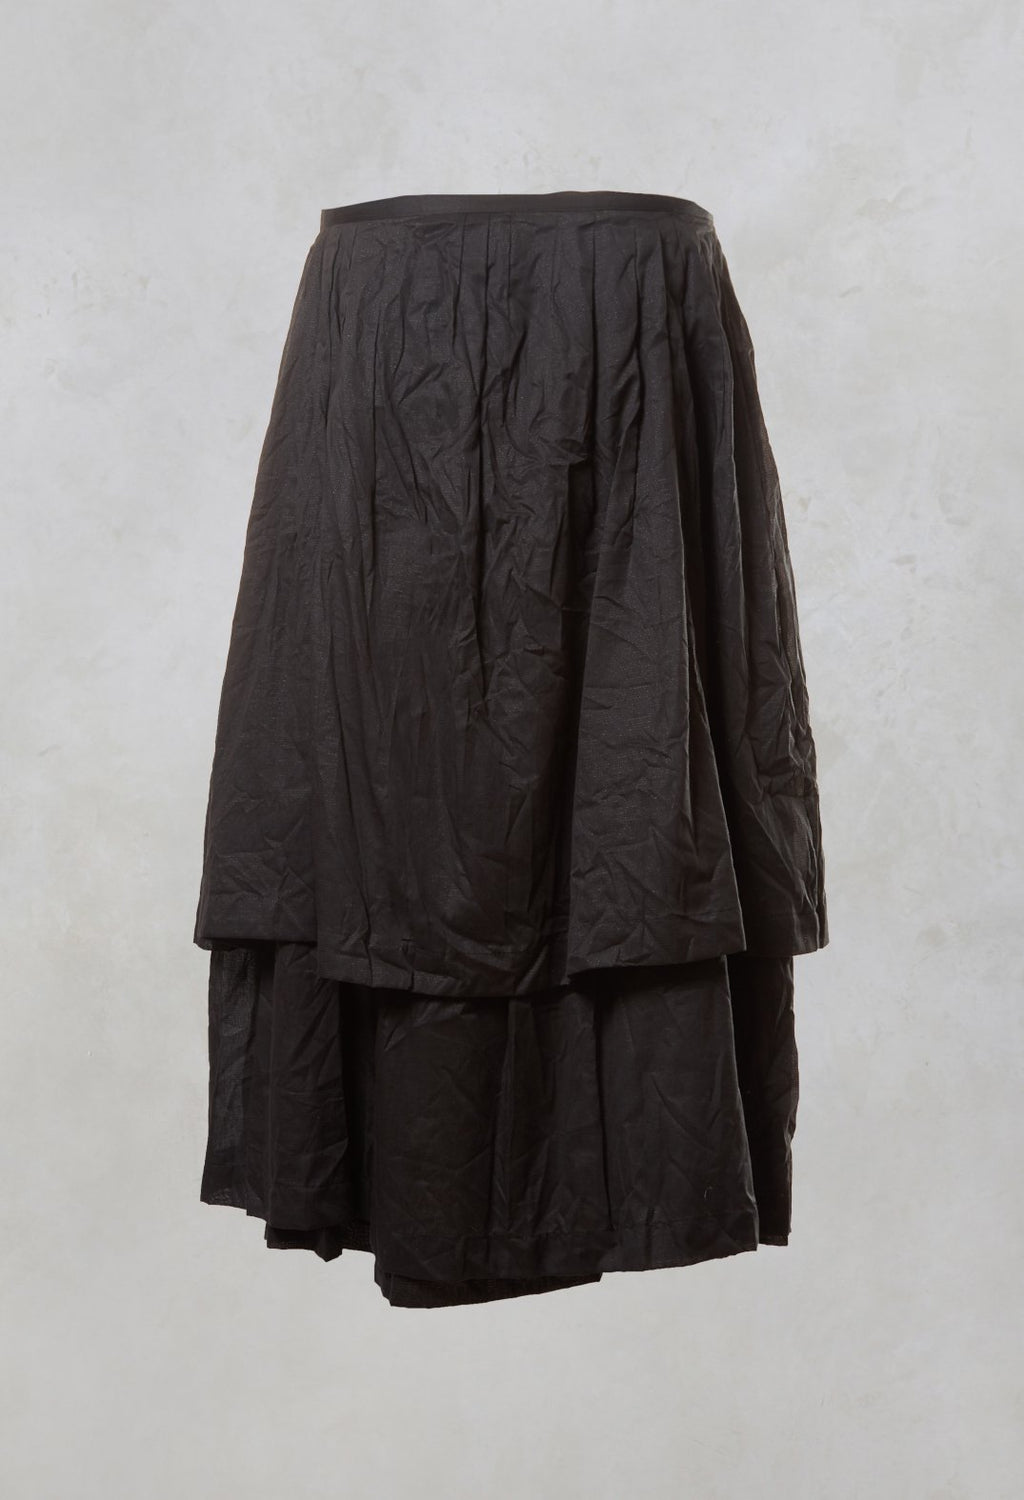 Layered Oxygene Skirt in Carbon